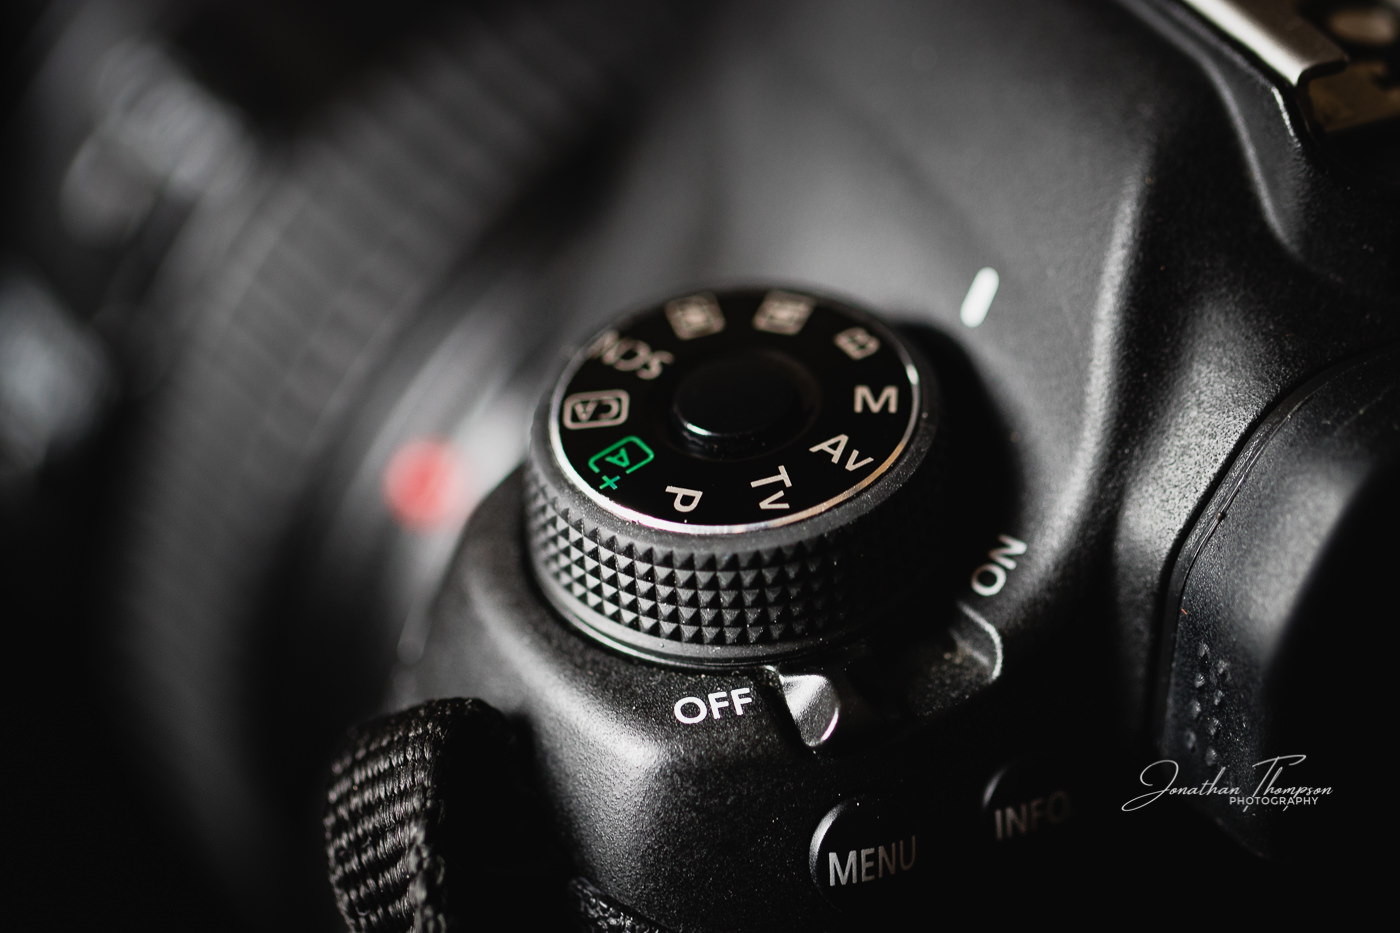 Photo of a Canon Camera mode dial on a Canon 6D